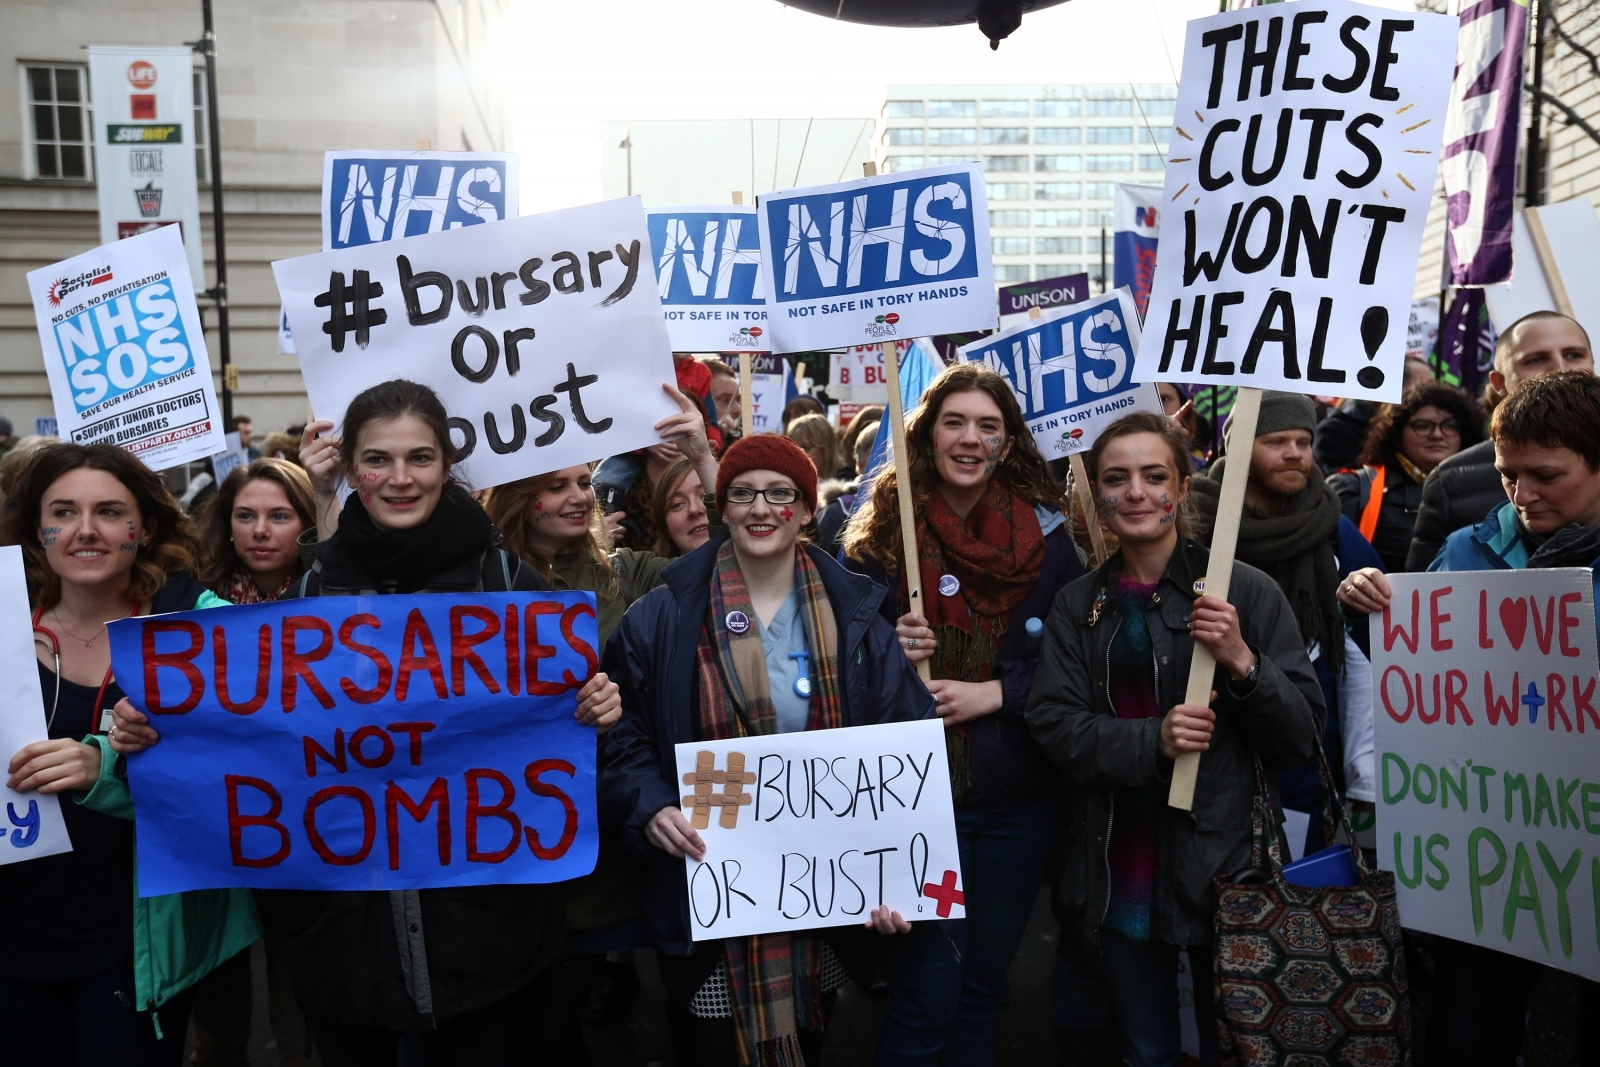 NHS nurses protest